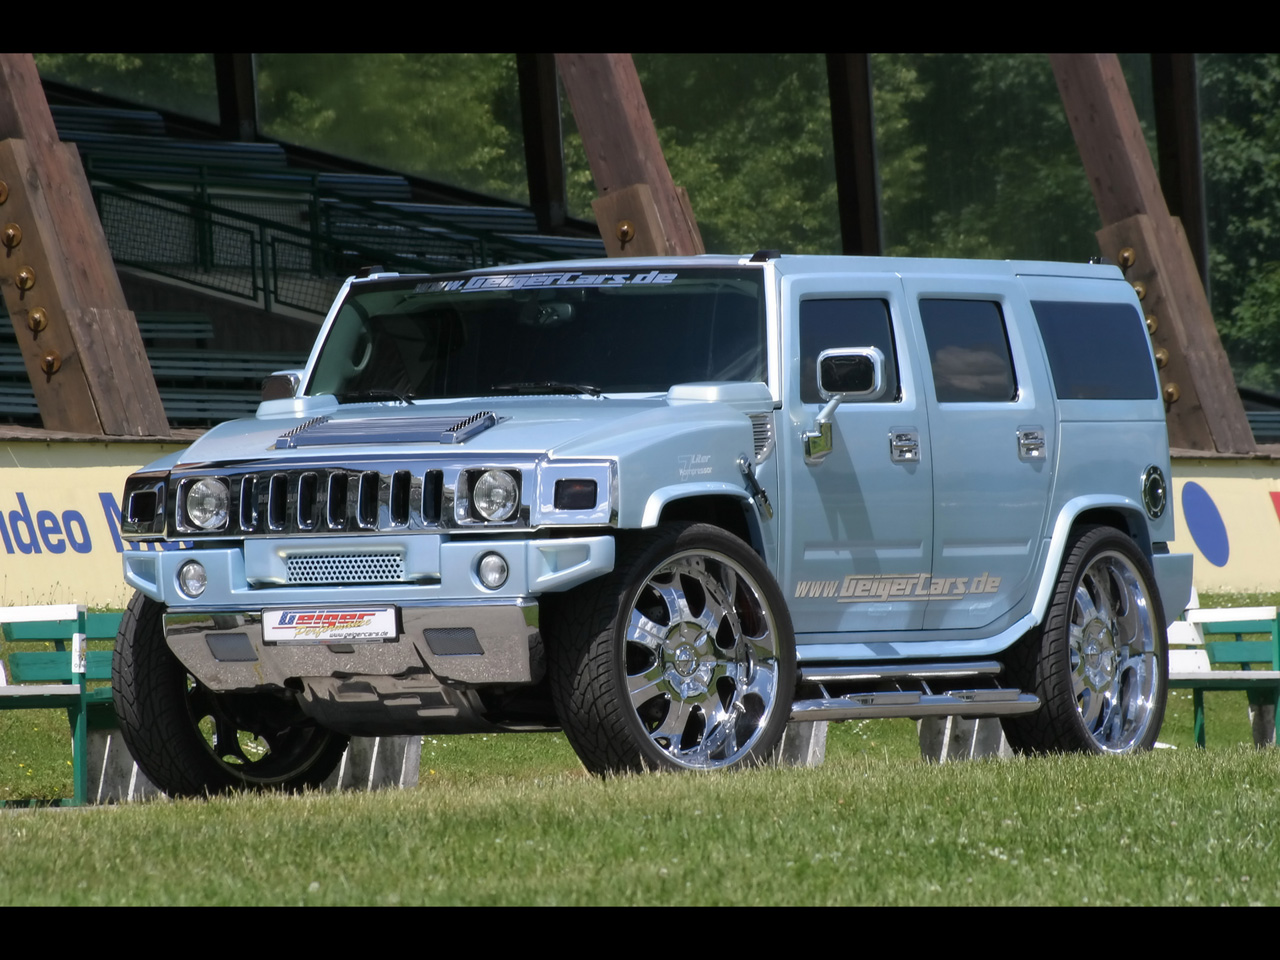 Wallpapers Background Hummer H2 Wallpapers